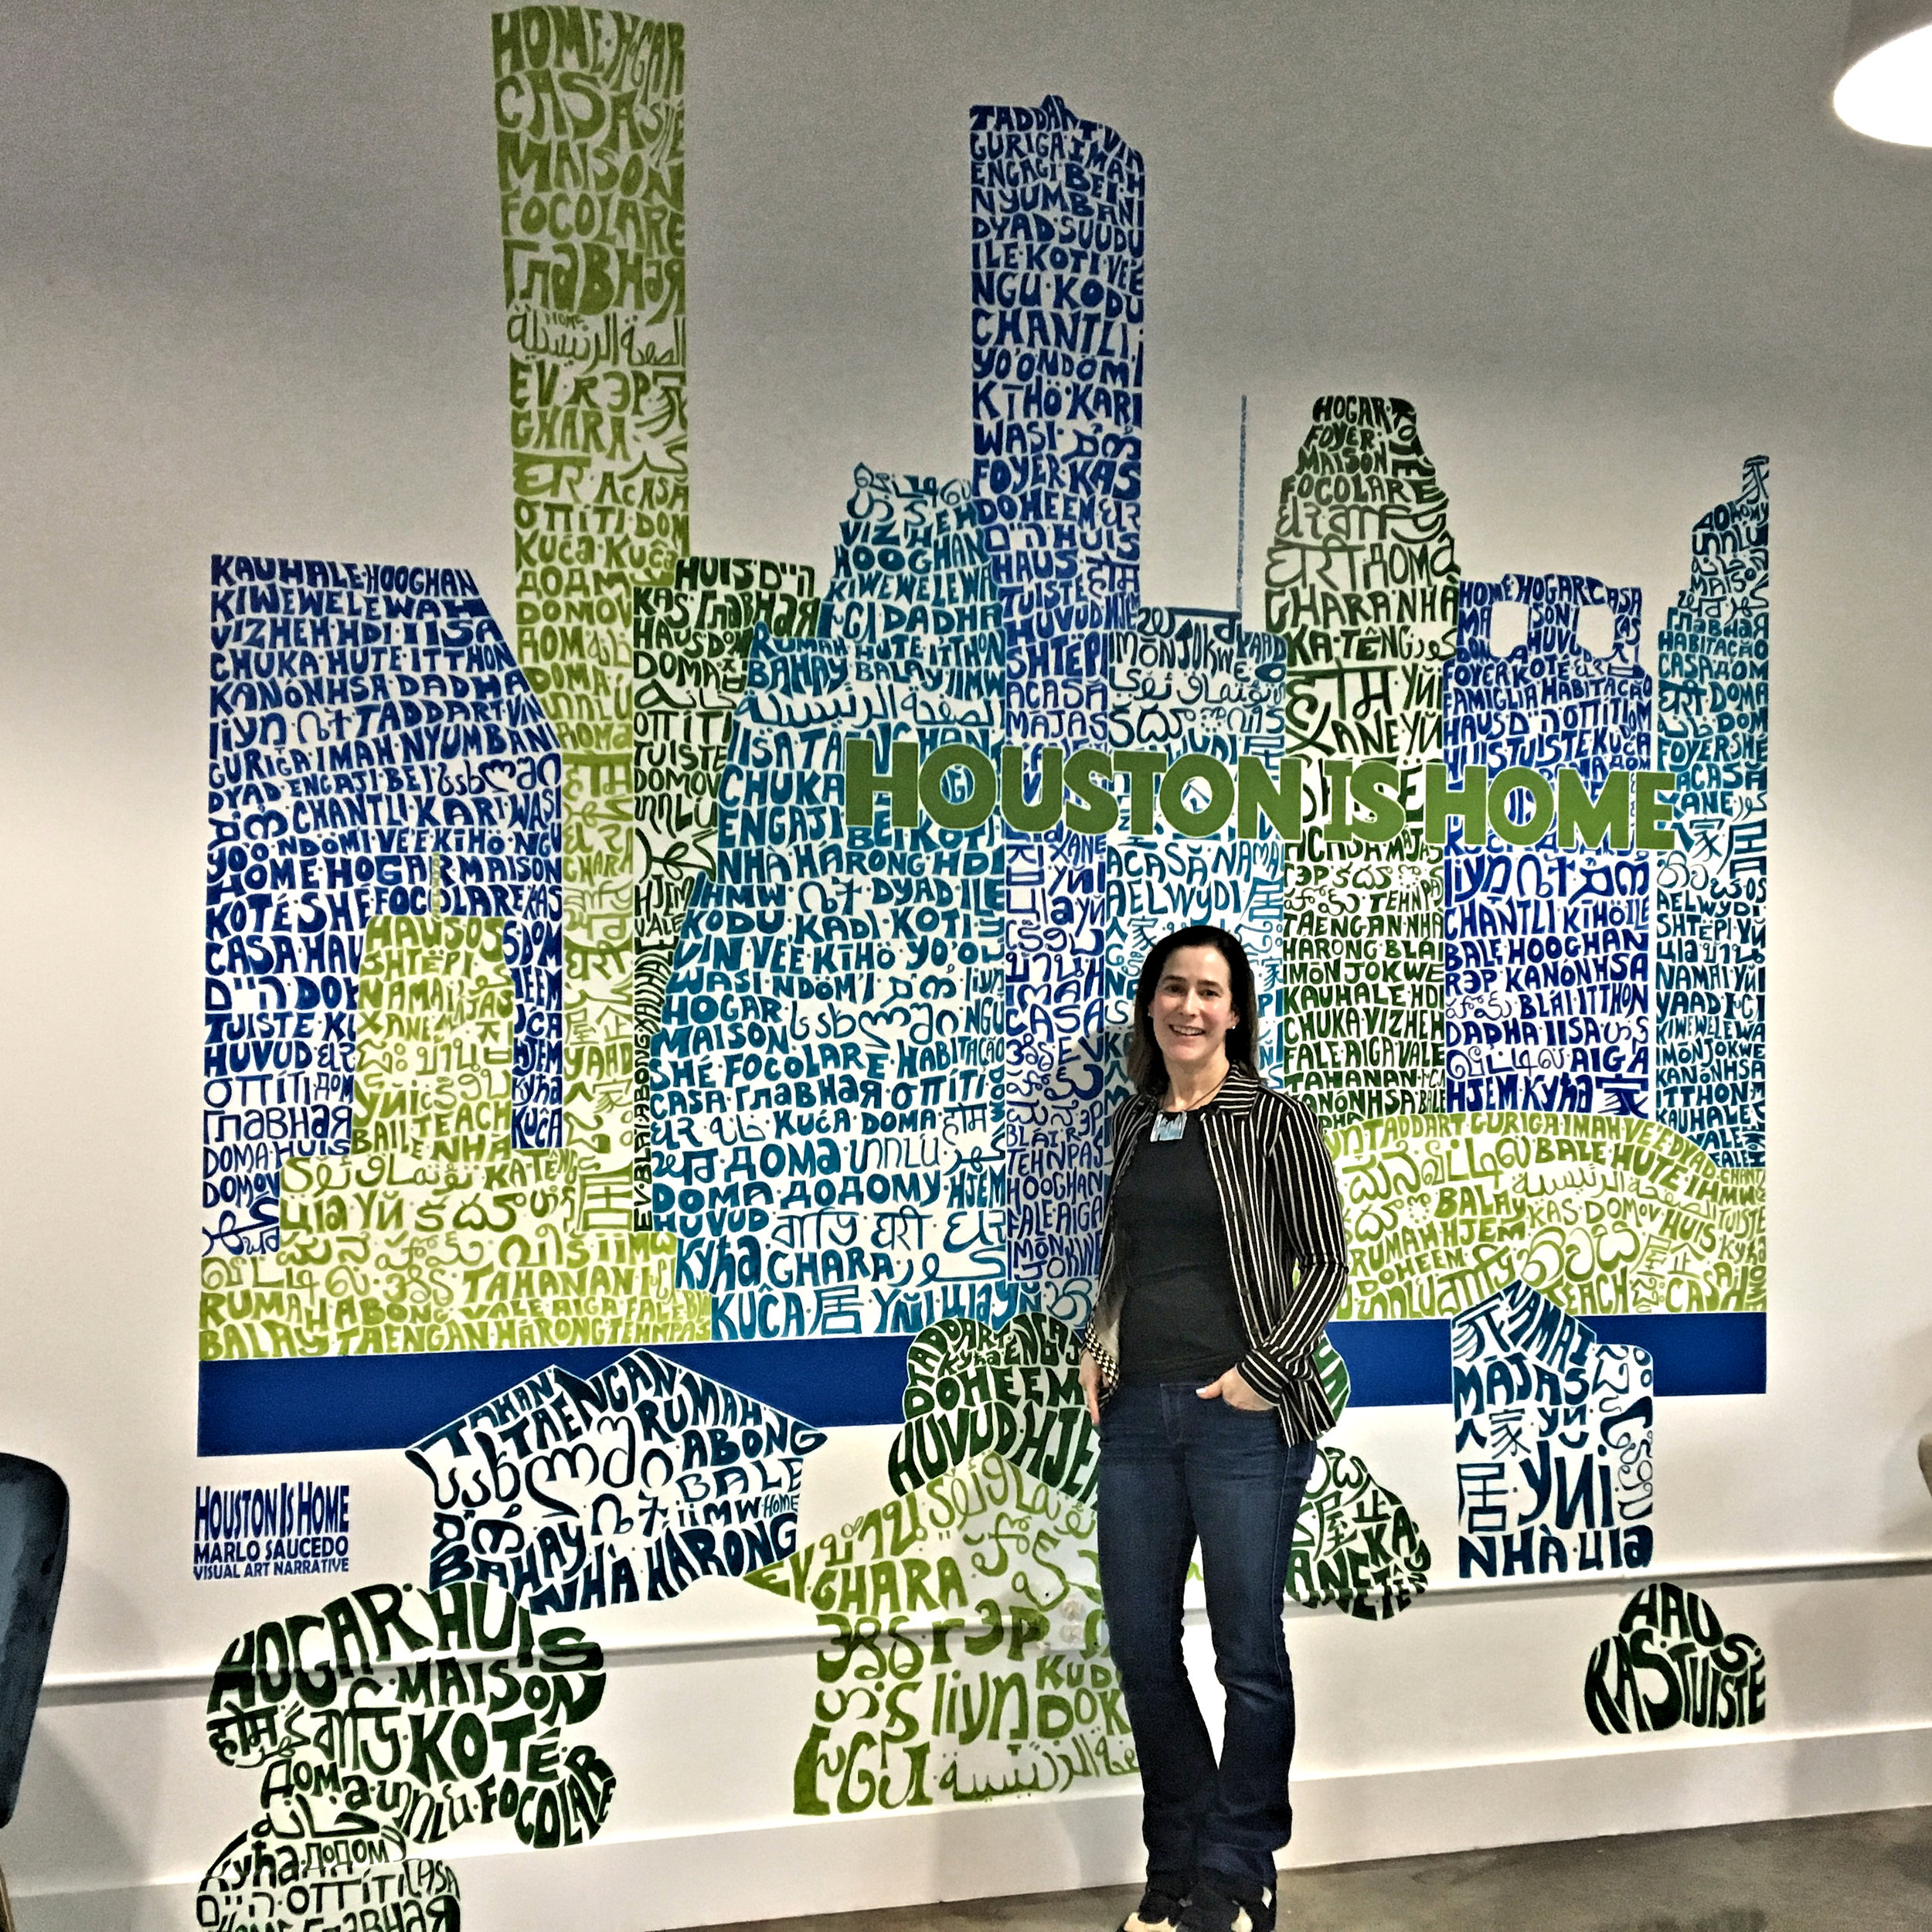 Mural : Boulevard Realty - Boulevard Realty commissioned a 7' x 9' mural, Houston Is Home, a skyline made of the word home written in 140+ of the diverse city's spoken and recognized languages, for their new multipurpose community/office YourSpace space, 927 Studewood, Houston, TX, 77008.